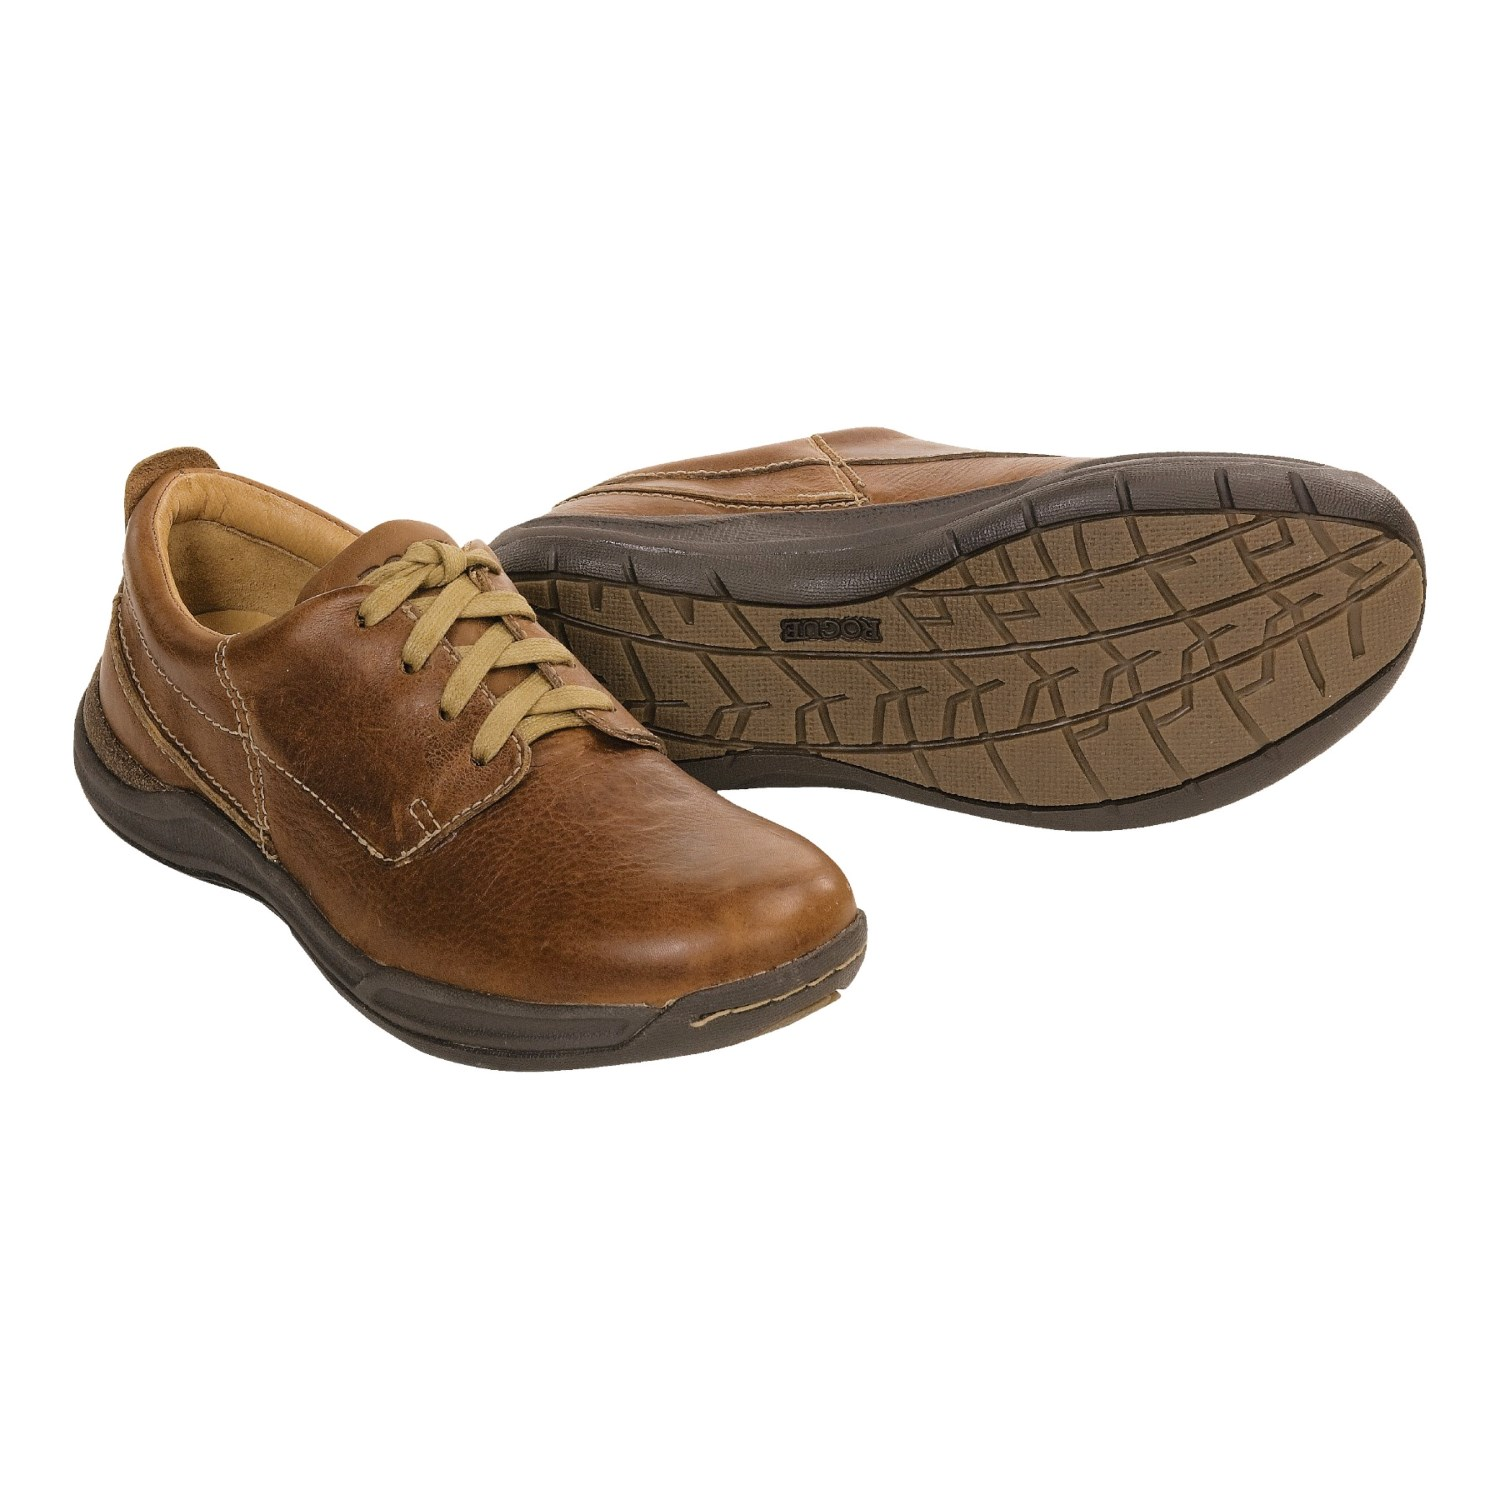 rogue powell oxford shoes for 1833g save 40